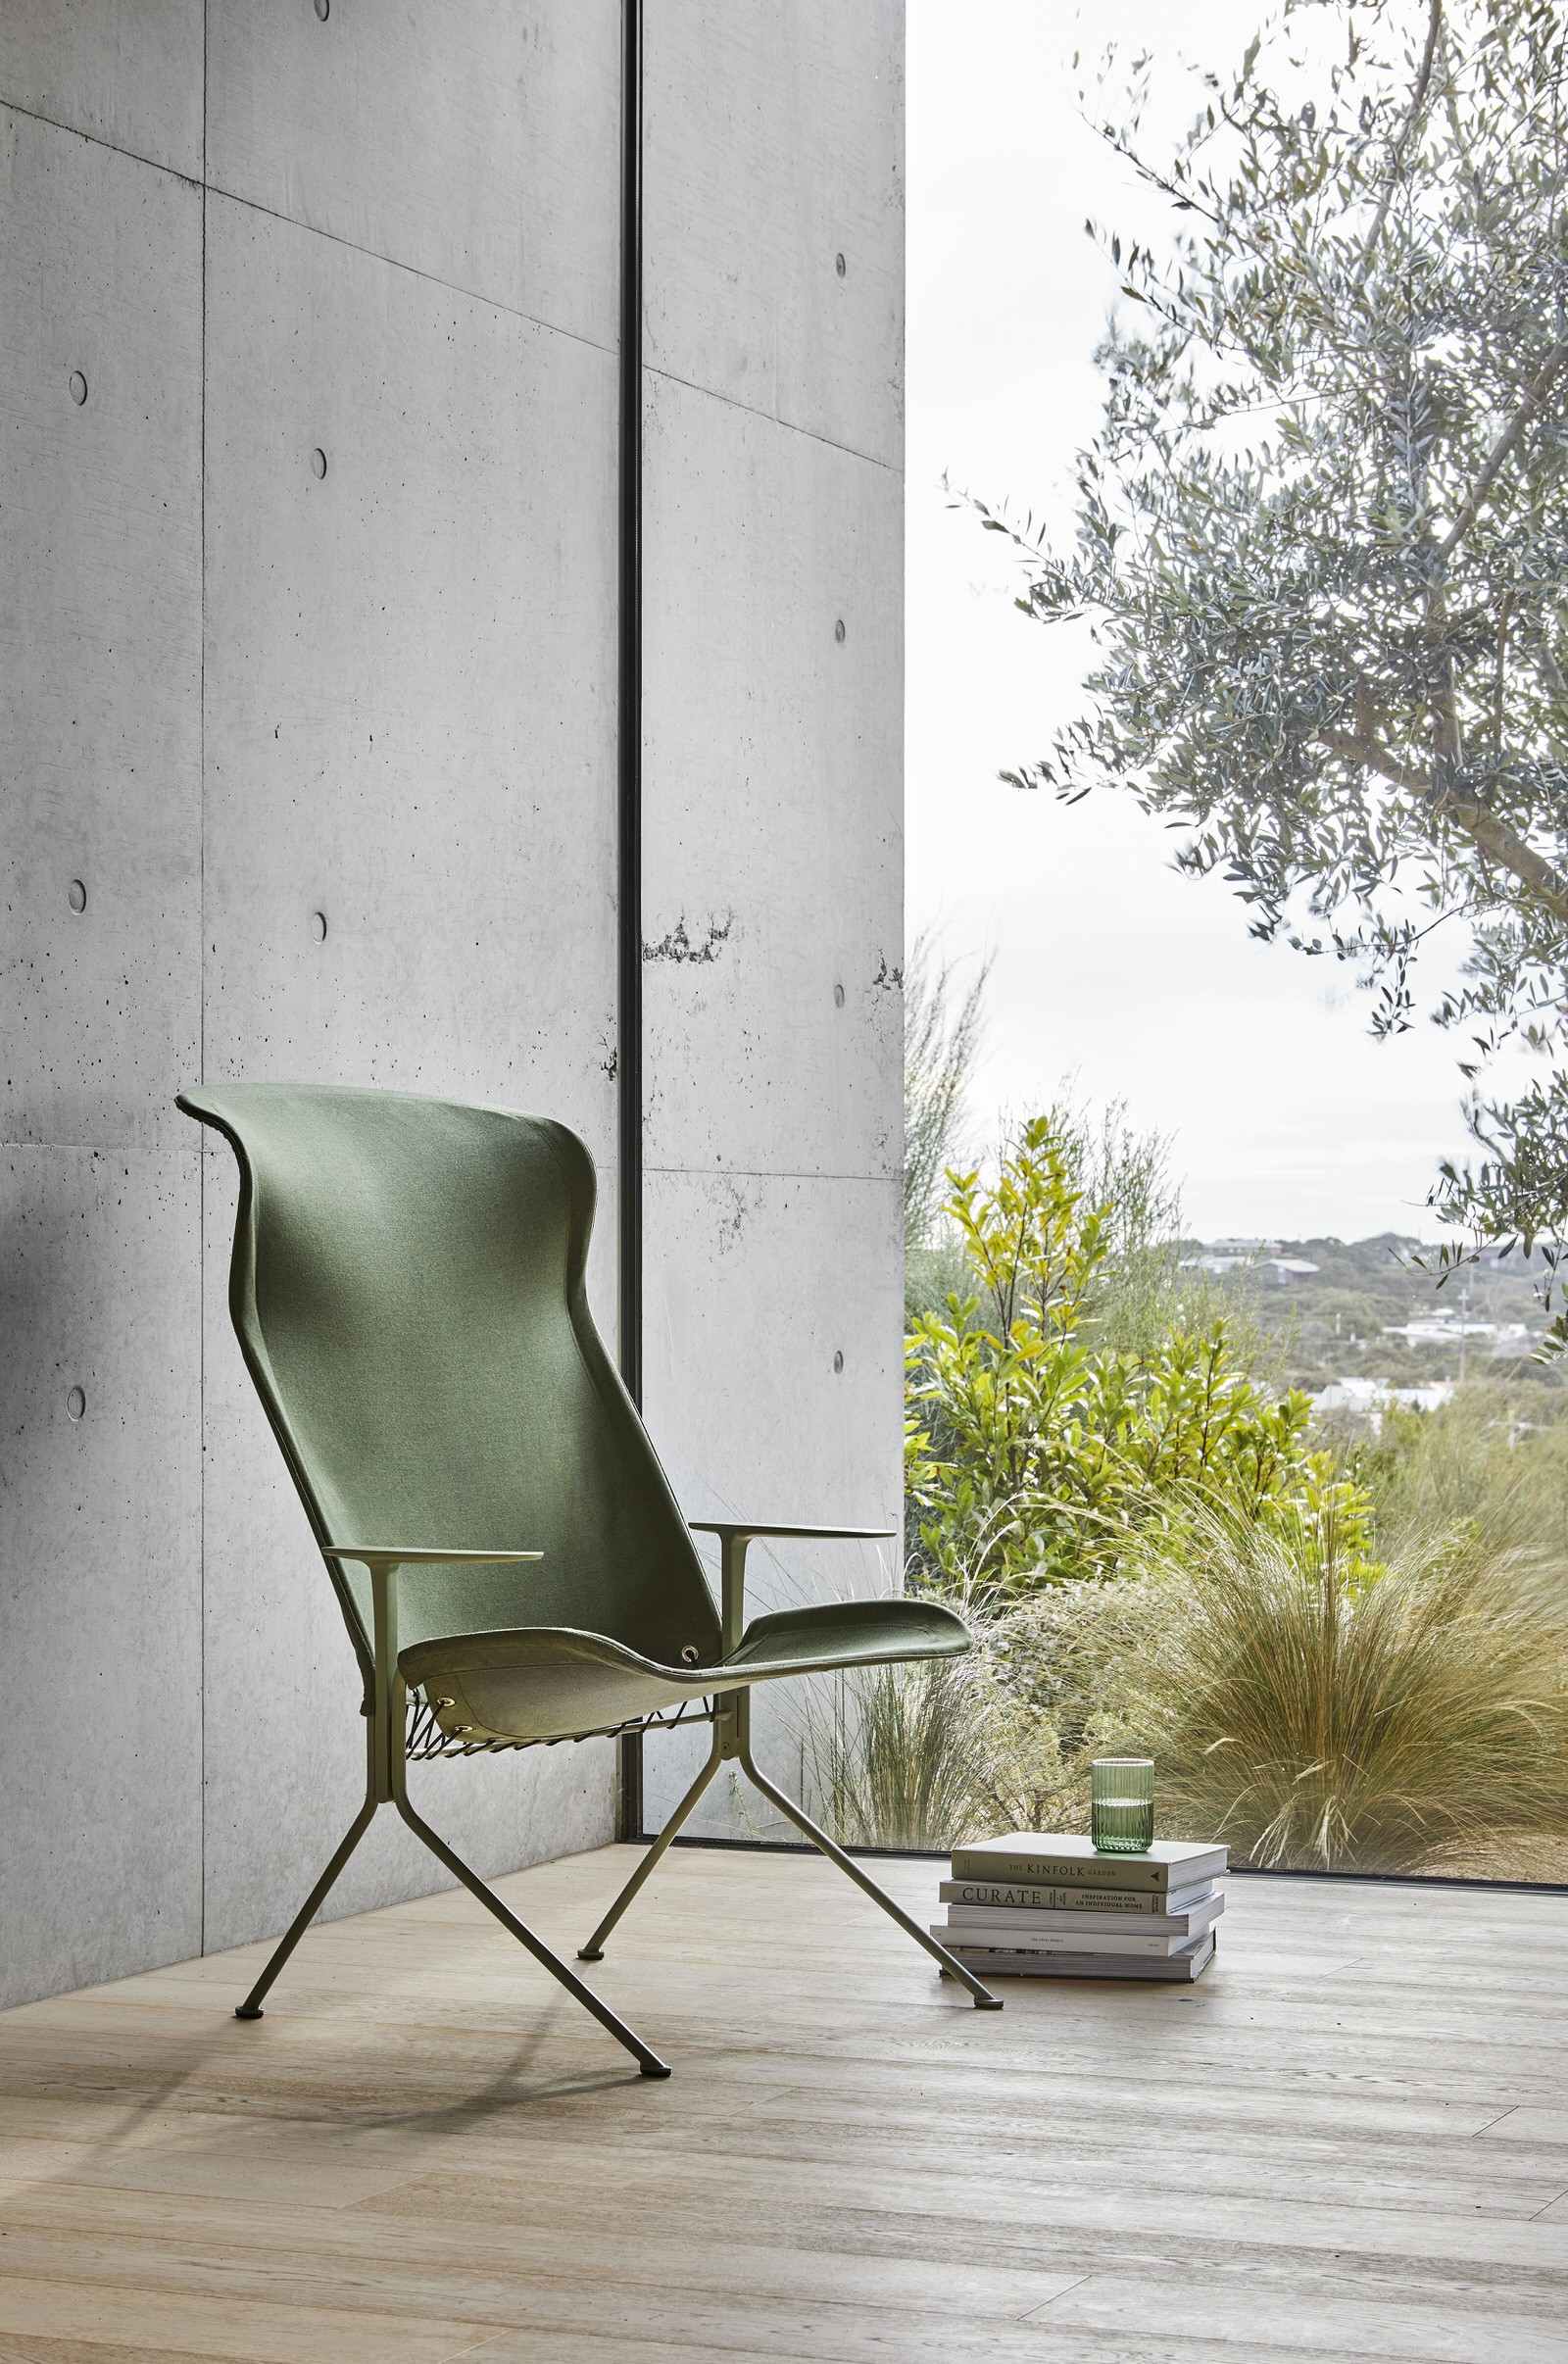 Tait Zephyr Lounger High Back With Arms Bankisa Leaf Textured Sunbrella Col Fern Yellowtrace